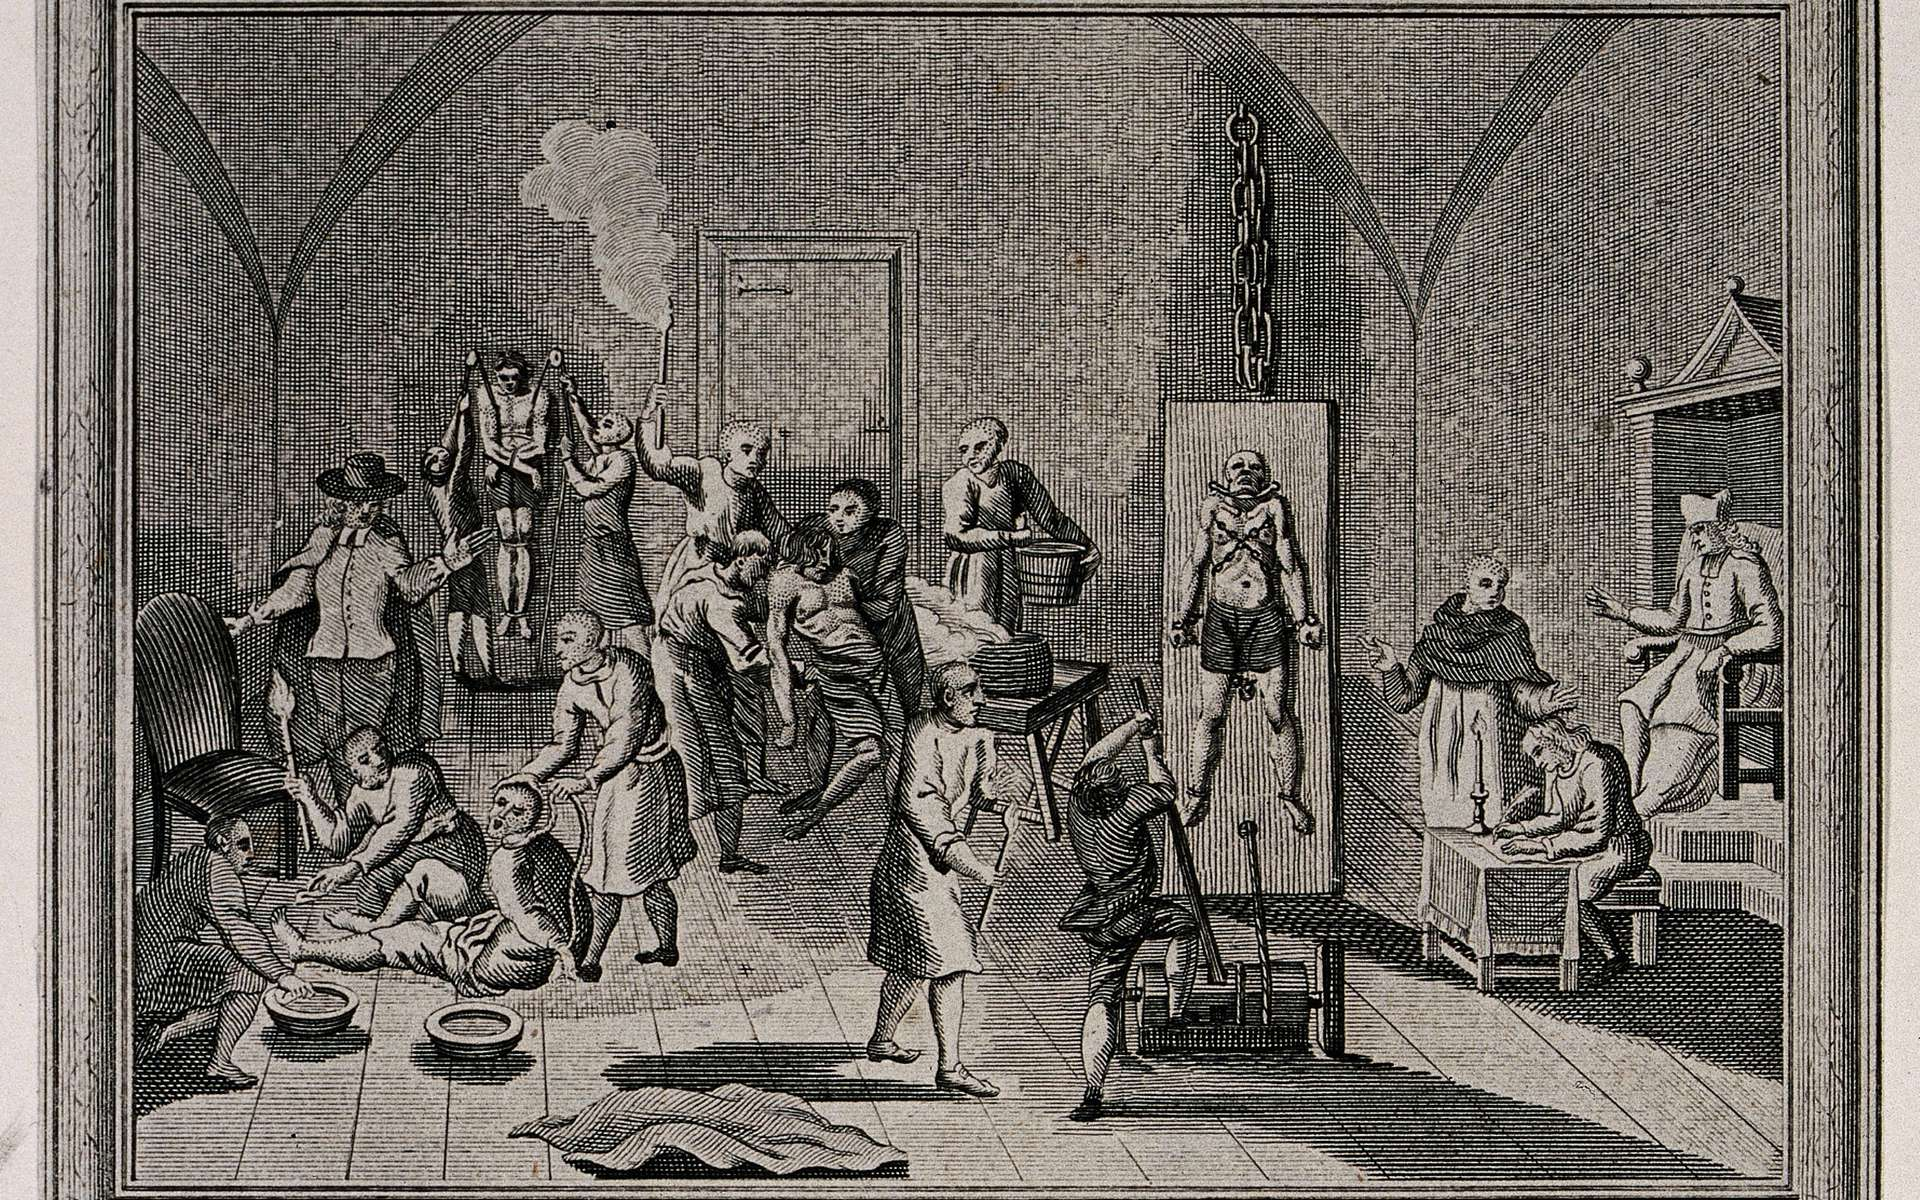 Prison espagnole lors de l'Inquisition, artiste inconnu. © Wellcome Images, Wikimedia Commons, CC by-sa 4.0